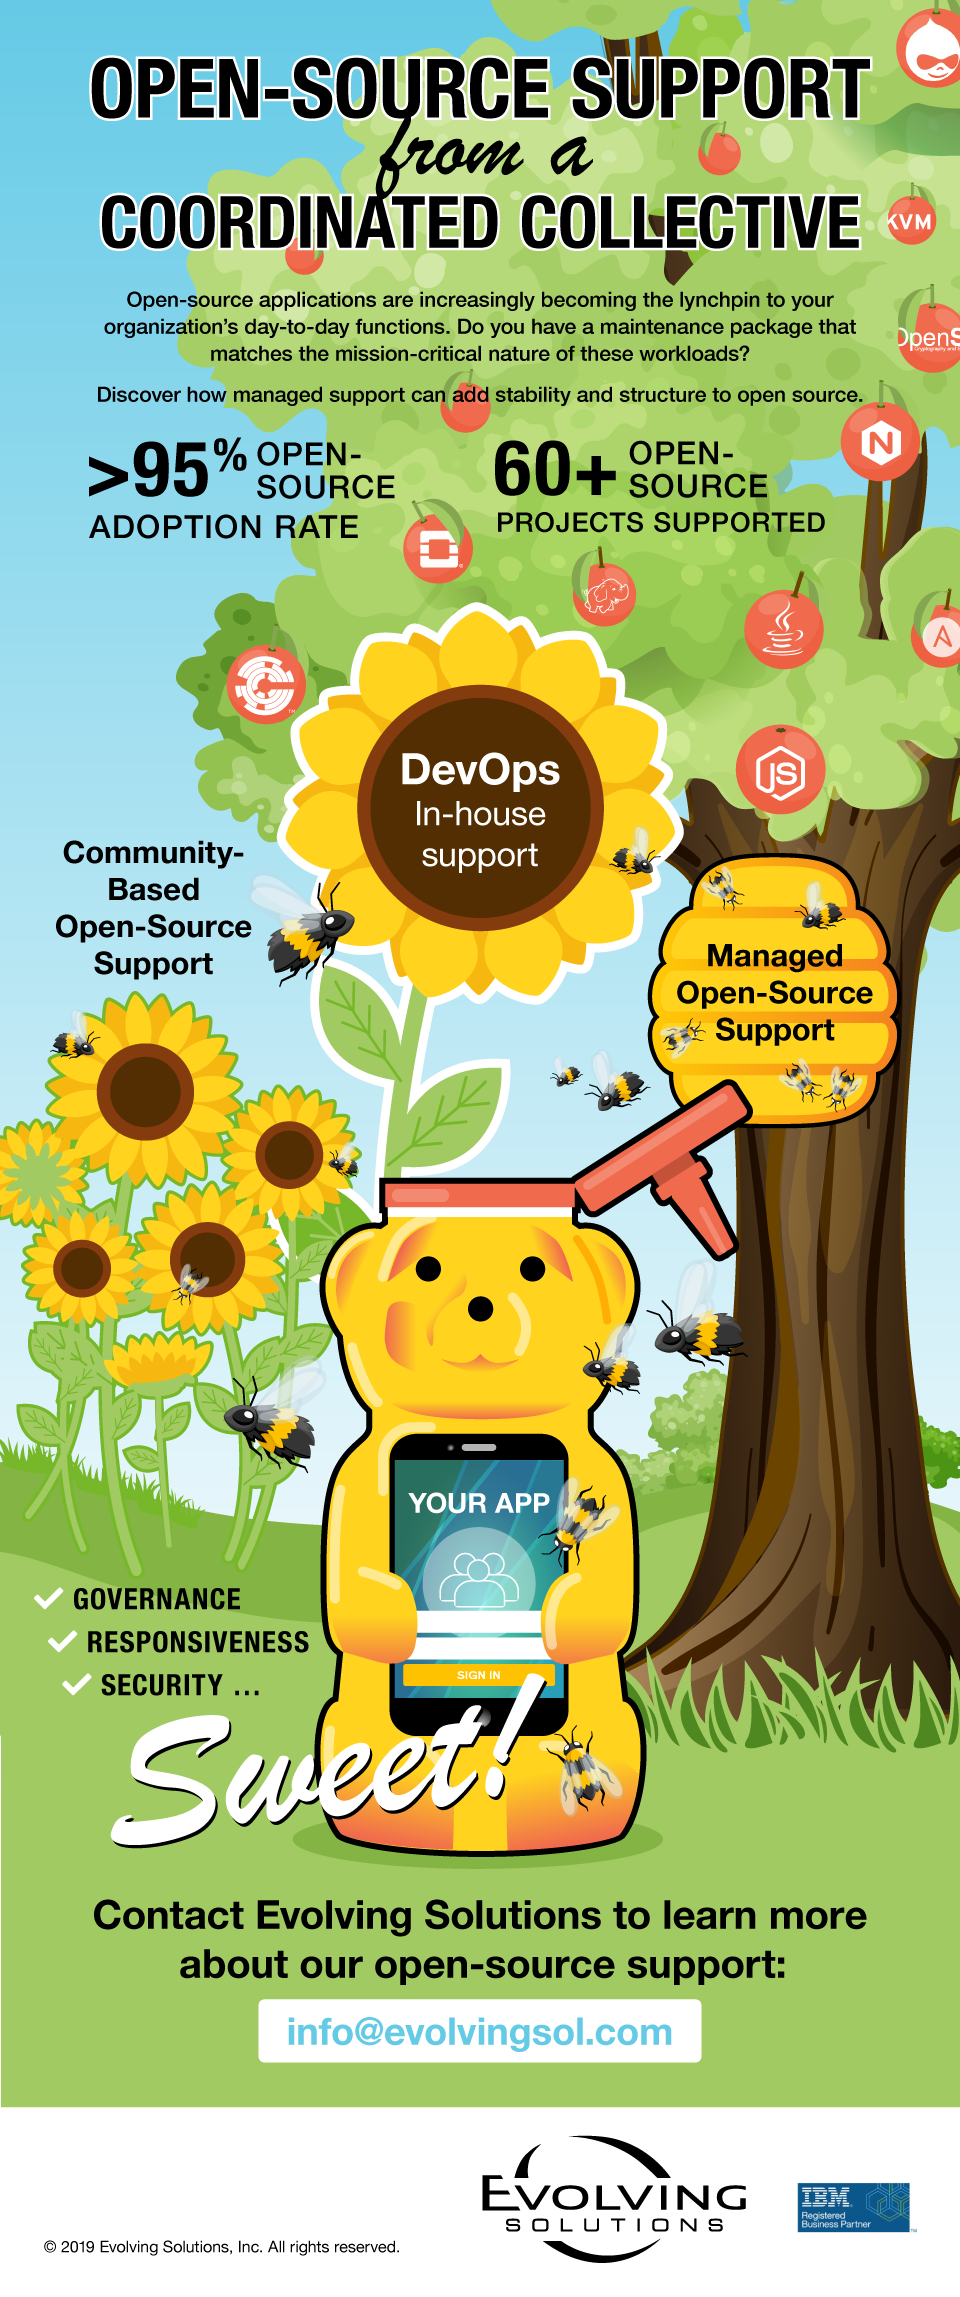 Open-Source Support from a Coordinated Collective